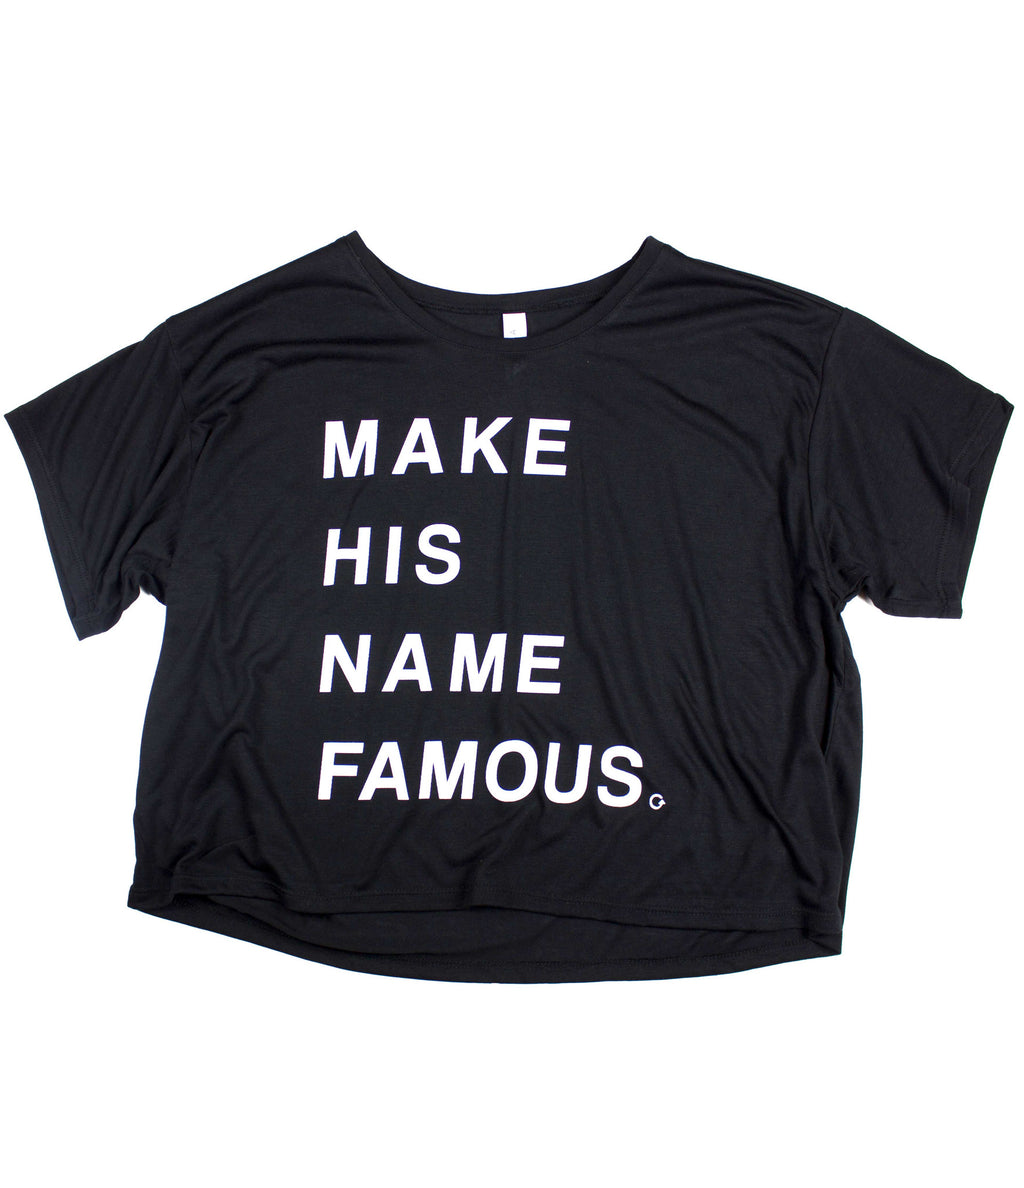 MAKE HIS NAME FAMOUS BOXY TEE